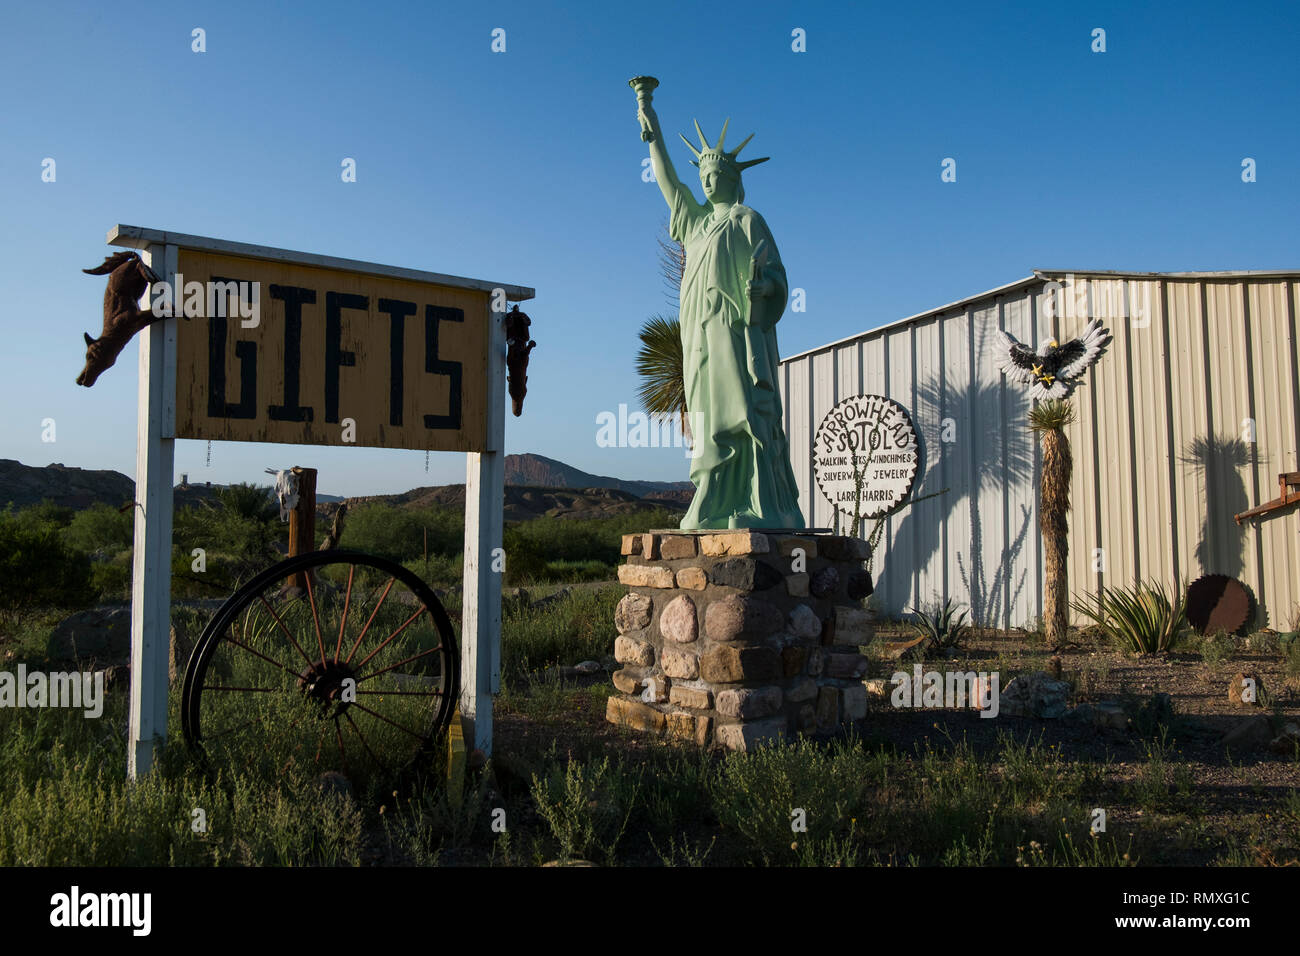 A kitschy replica of the Statue of Liberty at a gift shop in West Texas. - Stock Image